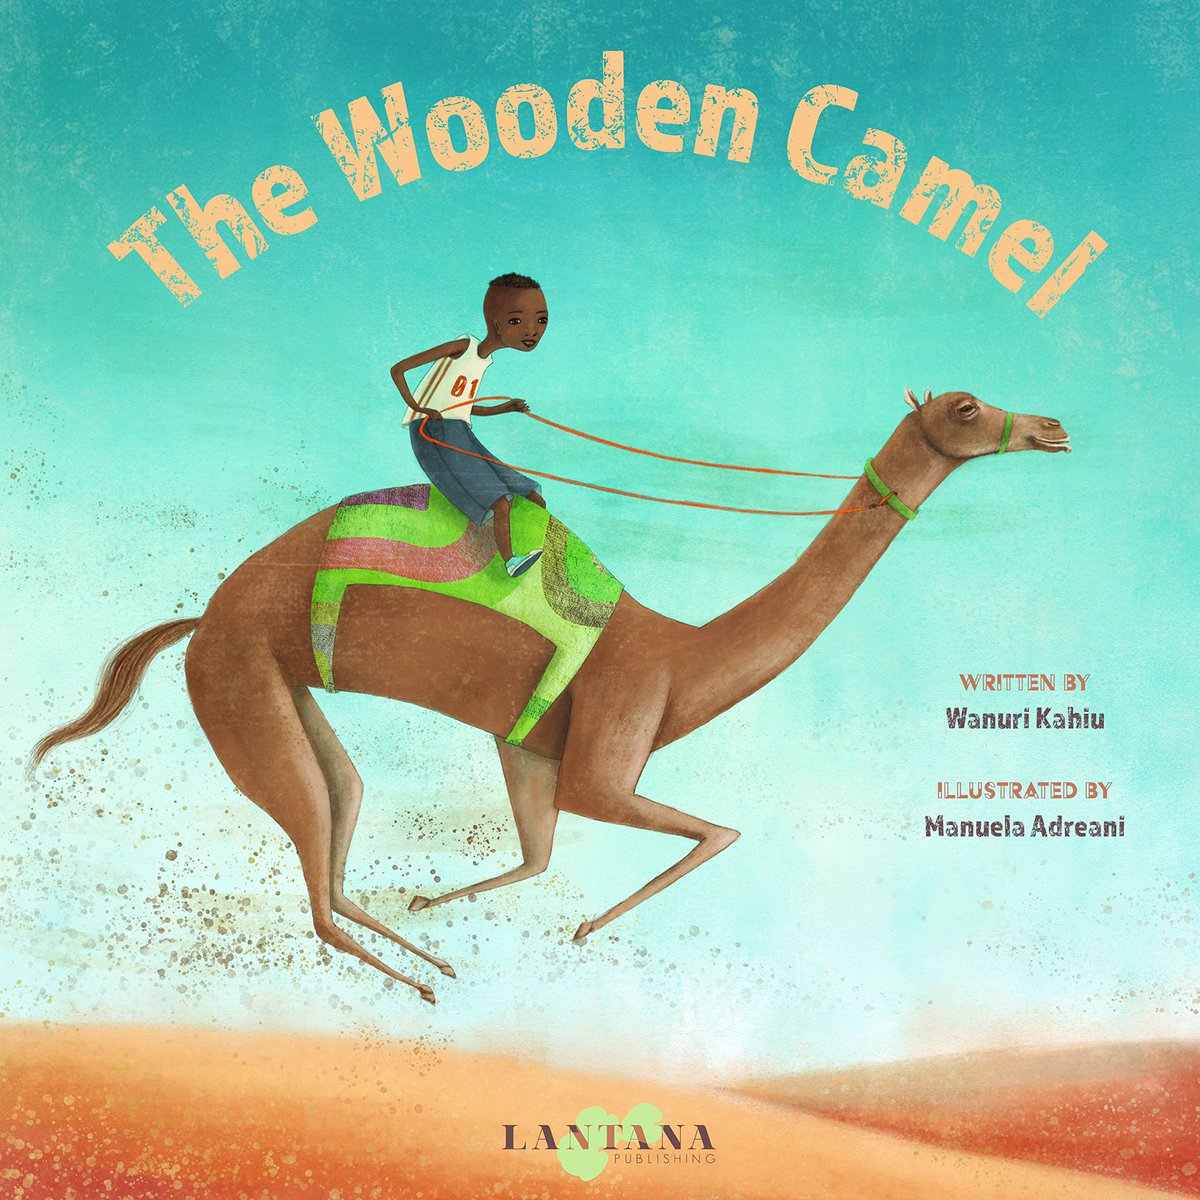 Our fabulous book #TheWoodenCamel by #WanuriKahiu & #ManuelaAdreani is also featured at the Children's African Book Award as one of the Honour Books in the #ChildrensSection @AfricaAccess #CABAAwards #Diversebooks 🙌😍📚👇